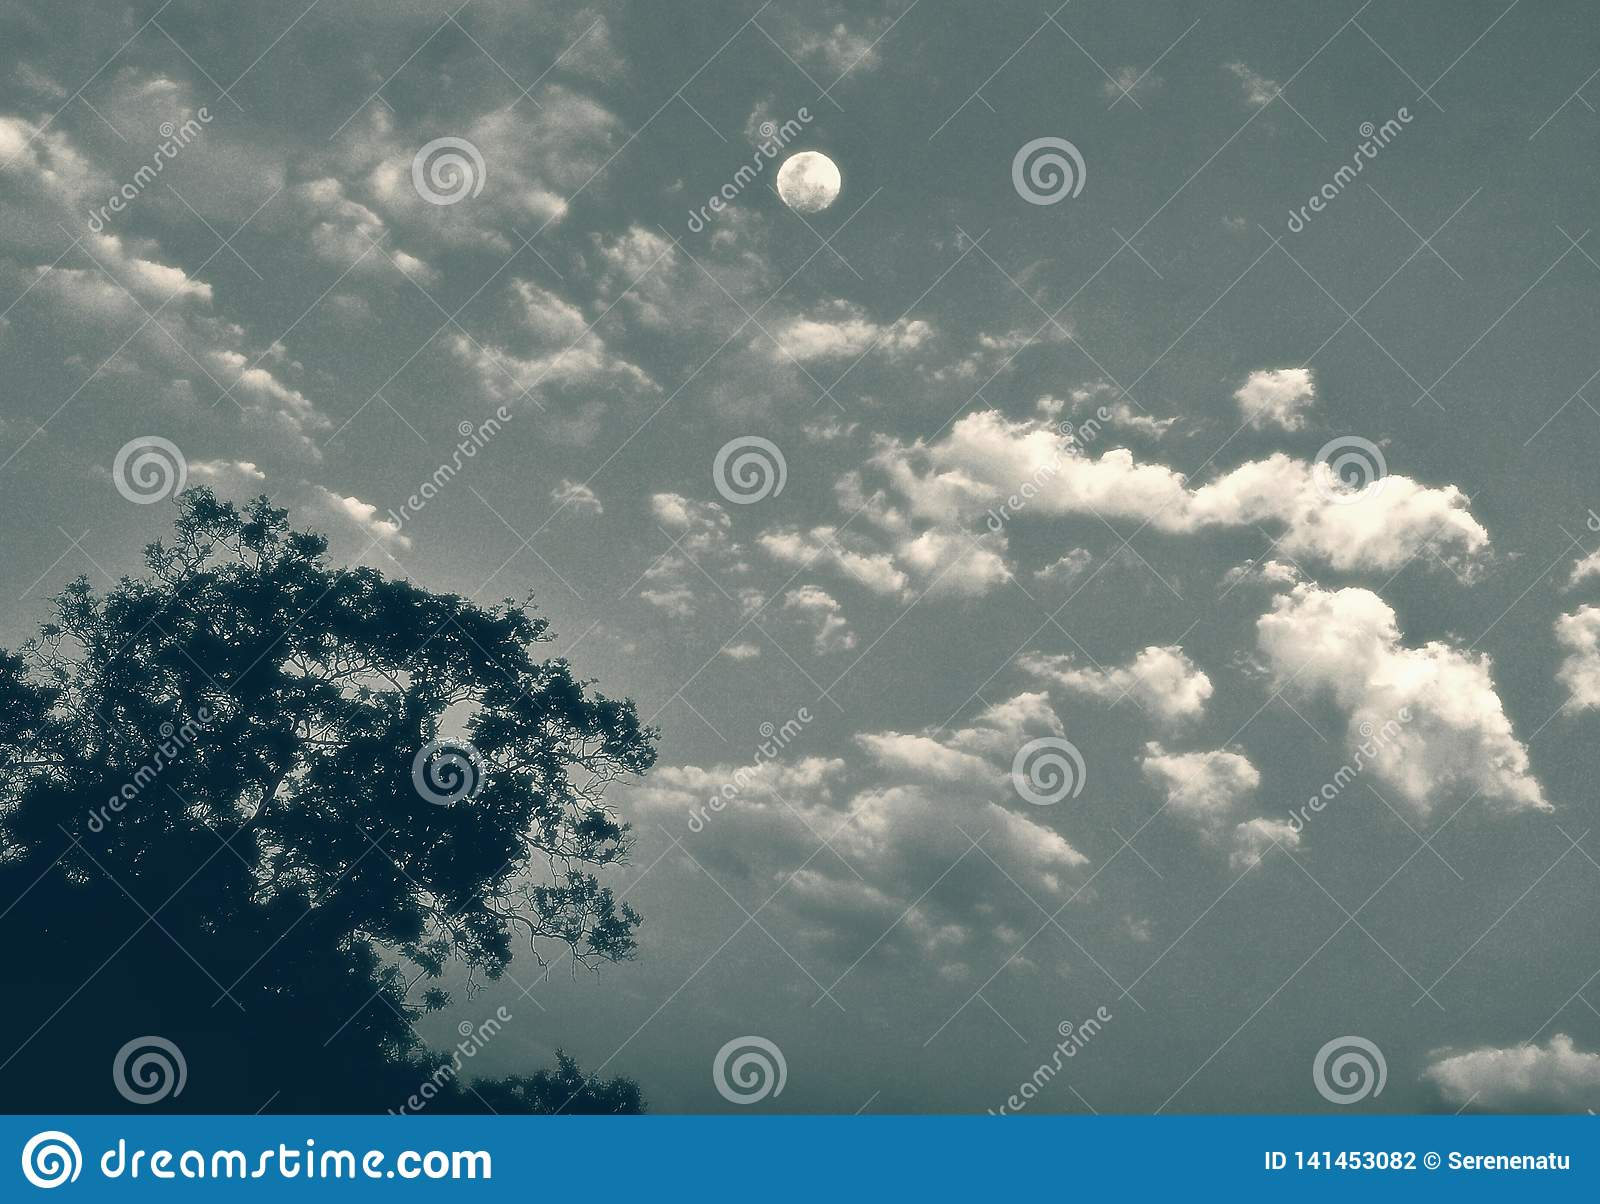 A view of moon in the clouds with an artistic touch